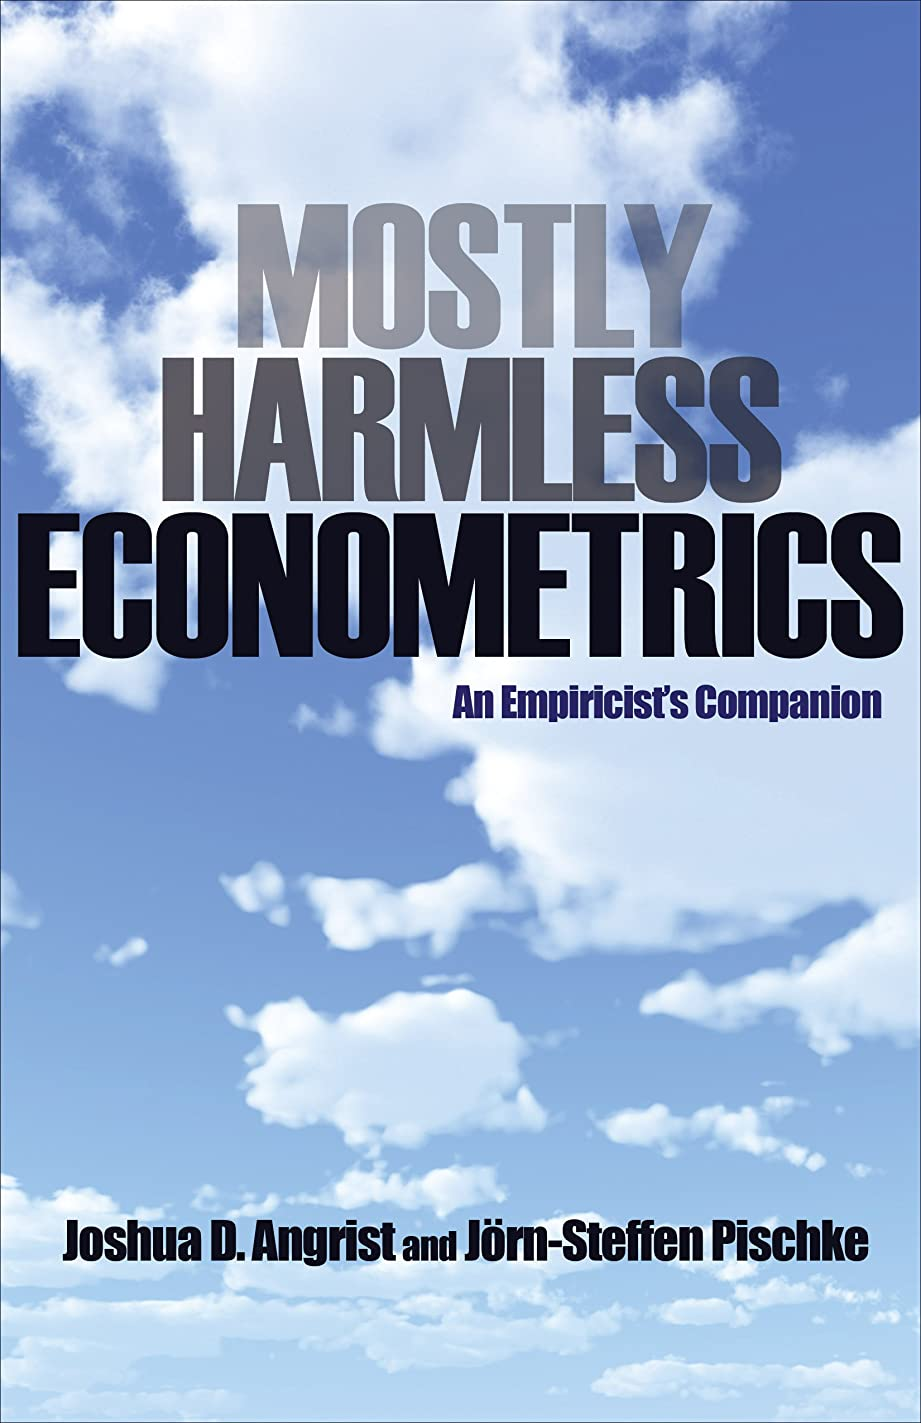 批判エージェント現金Mostly Harmless Econometrics: An Empiricist's Companion (English Edition)